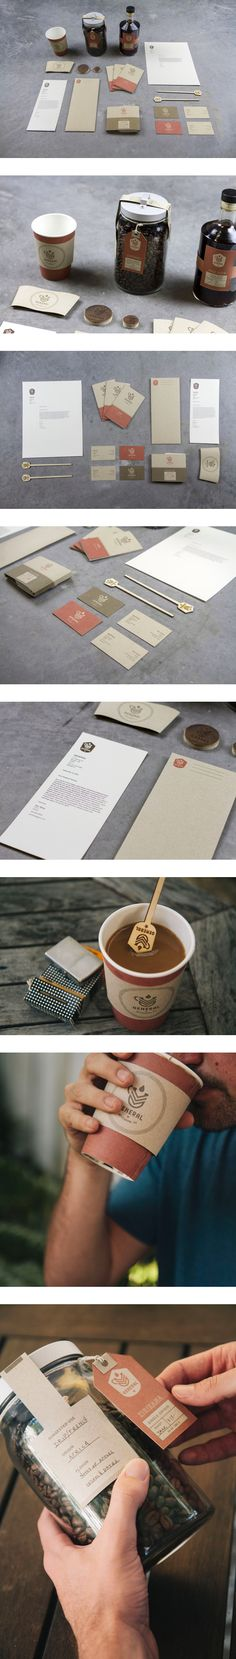 General Cafe by Clarke Harris, via Behance #identity #branding